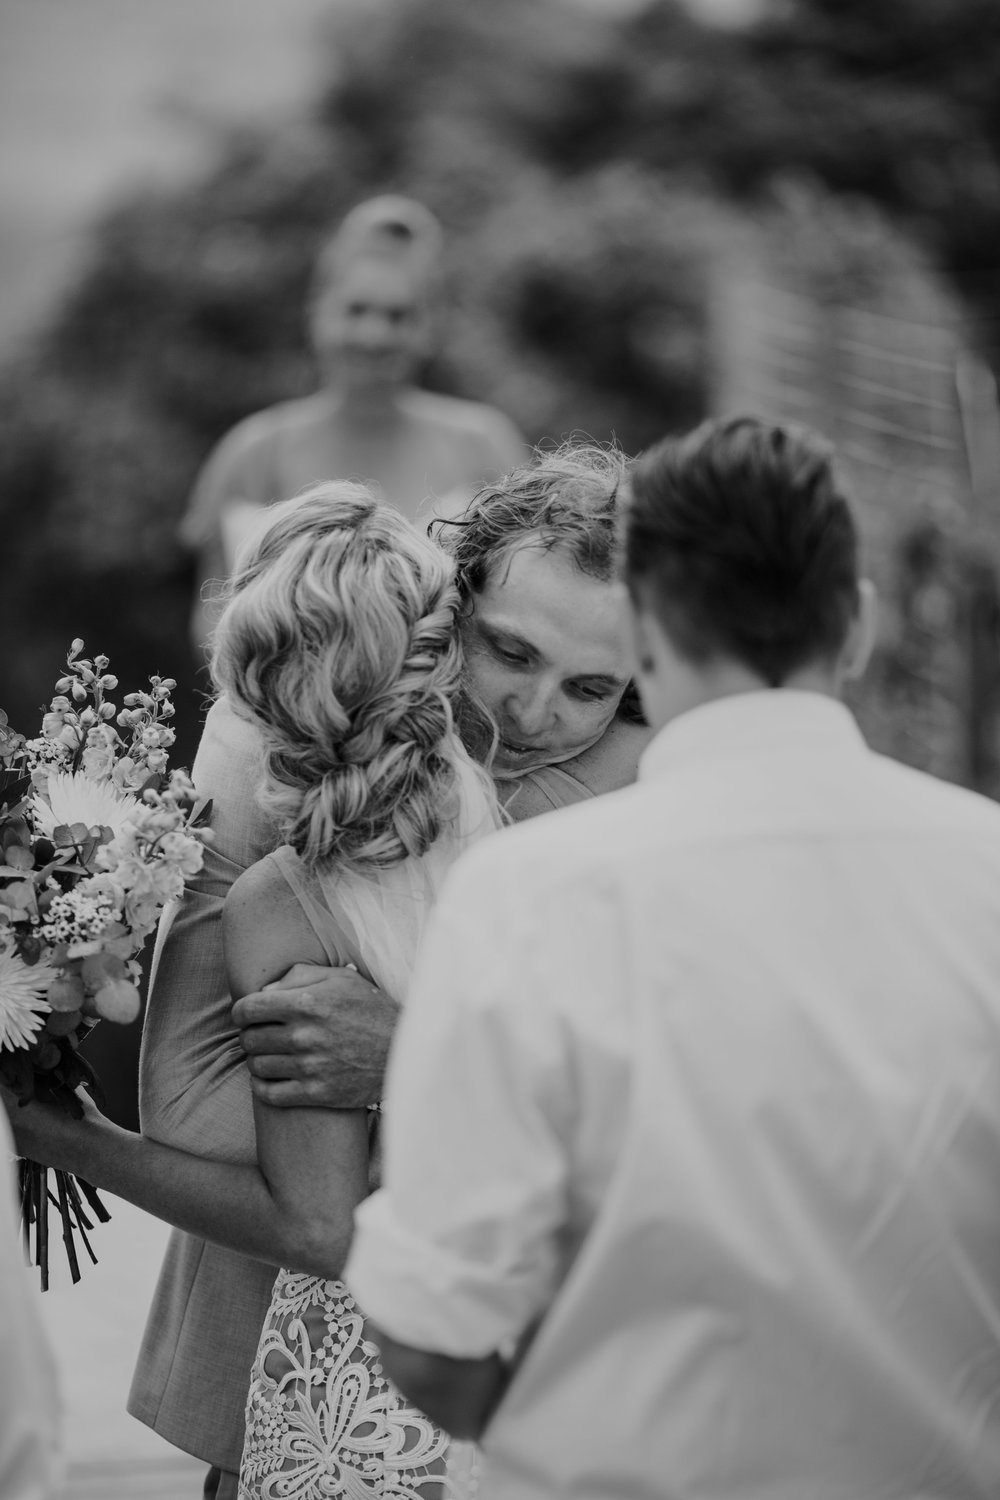 Jesse+Matt+Kangaroo+Valley+Wildwood+Boho+Relaxed+wedding+-99.jpg